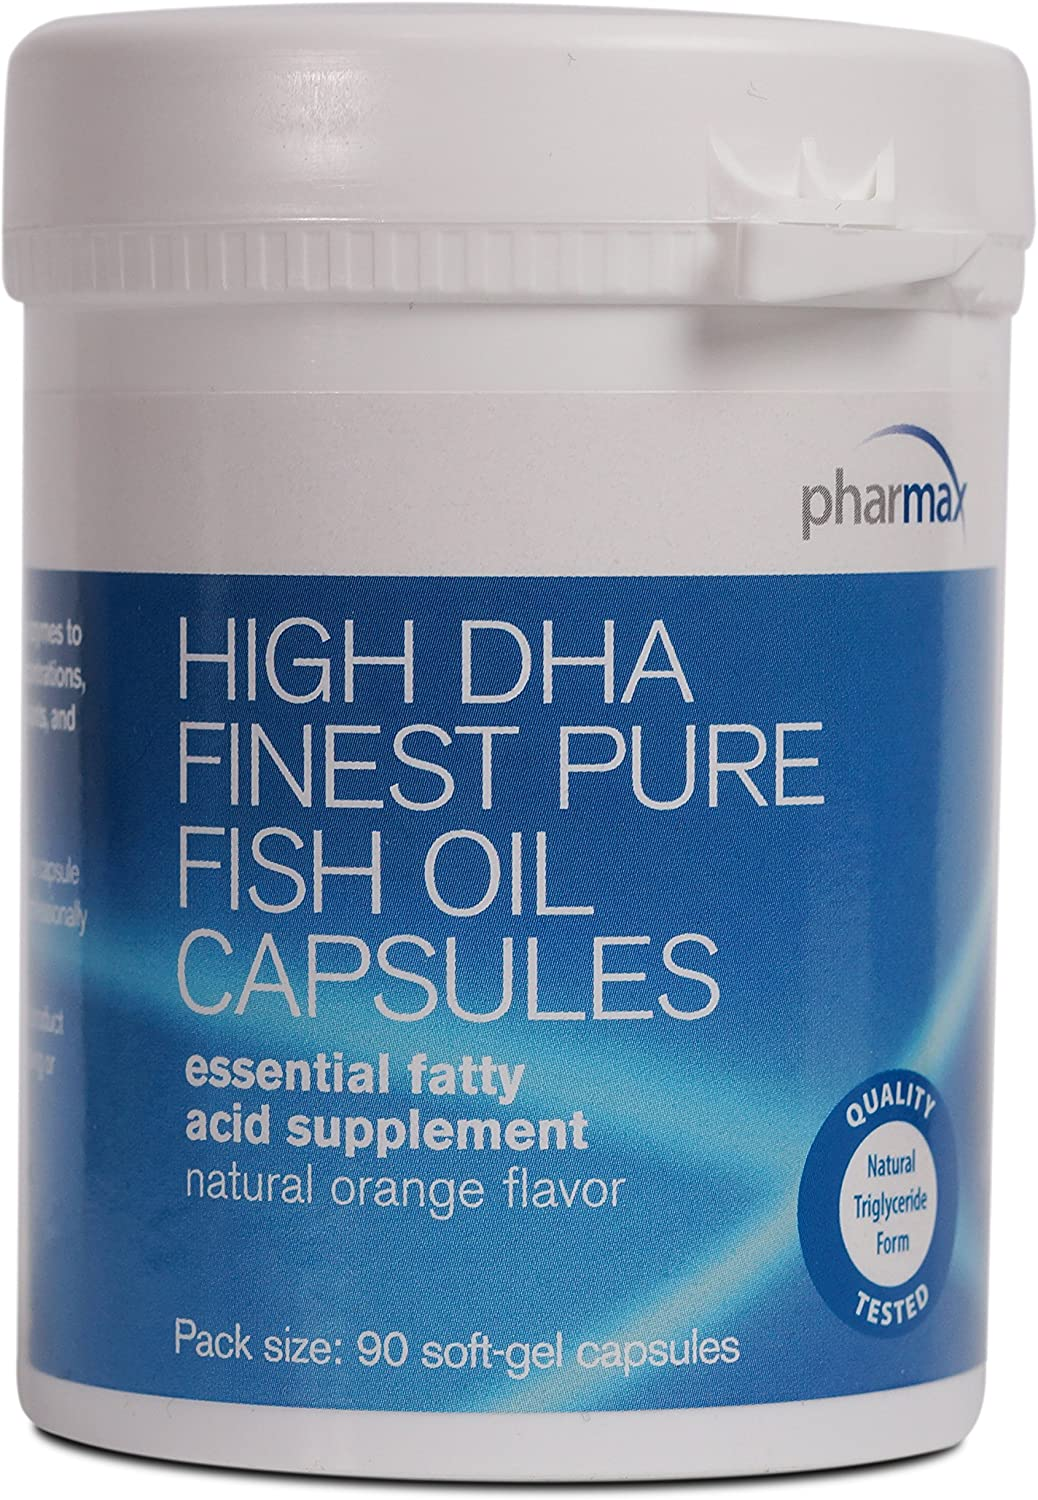 High DHA Finest Pure Fish Oil Caps (expires 3-31-2021)